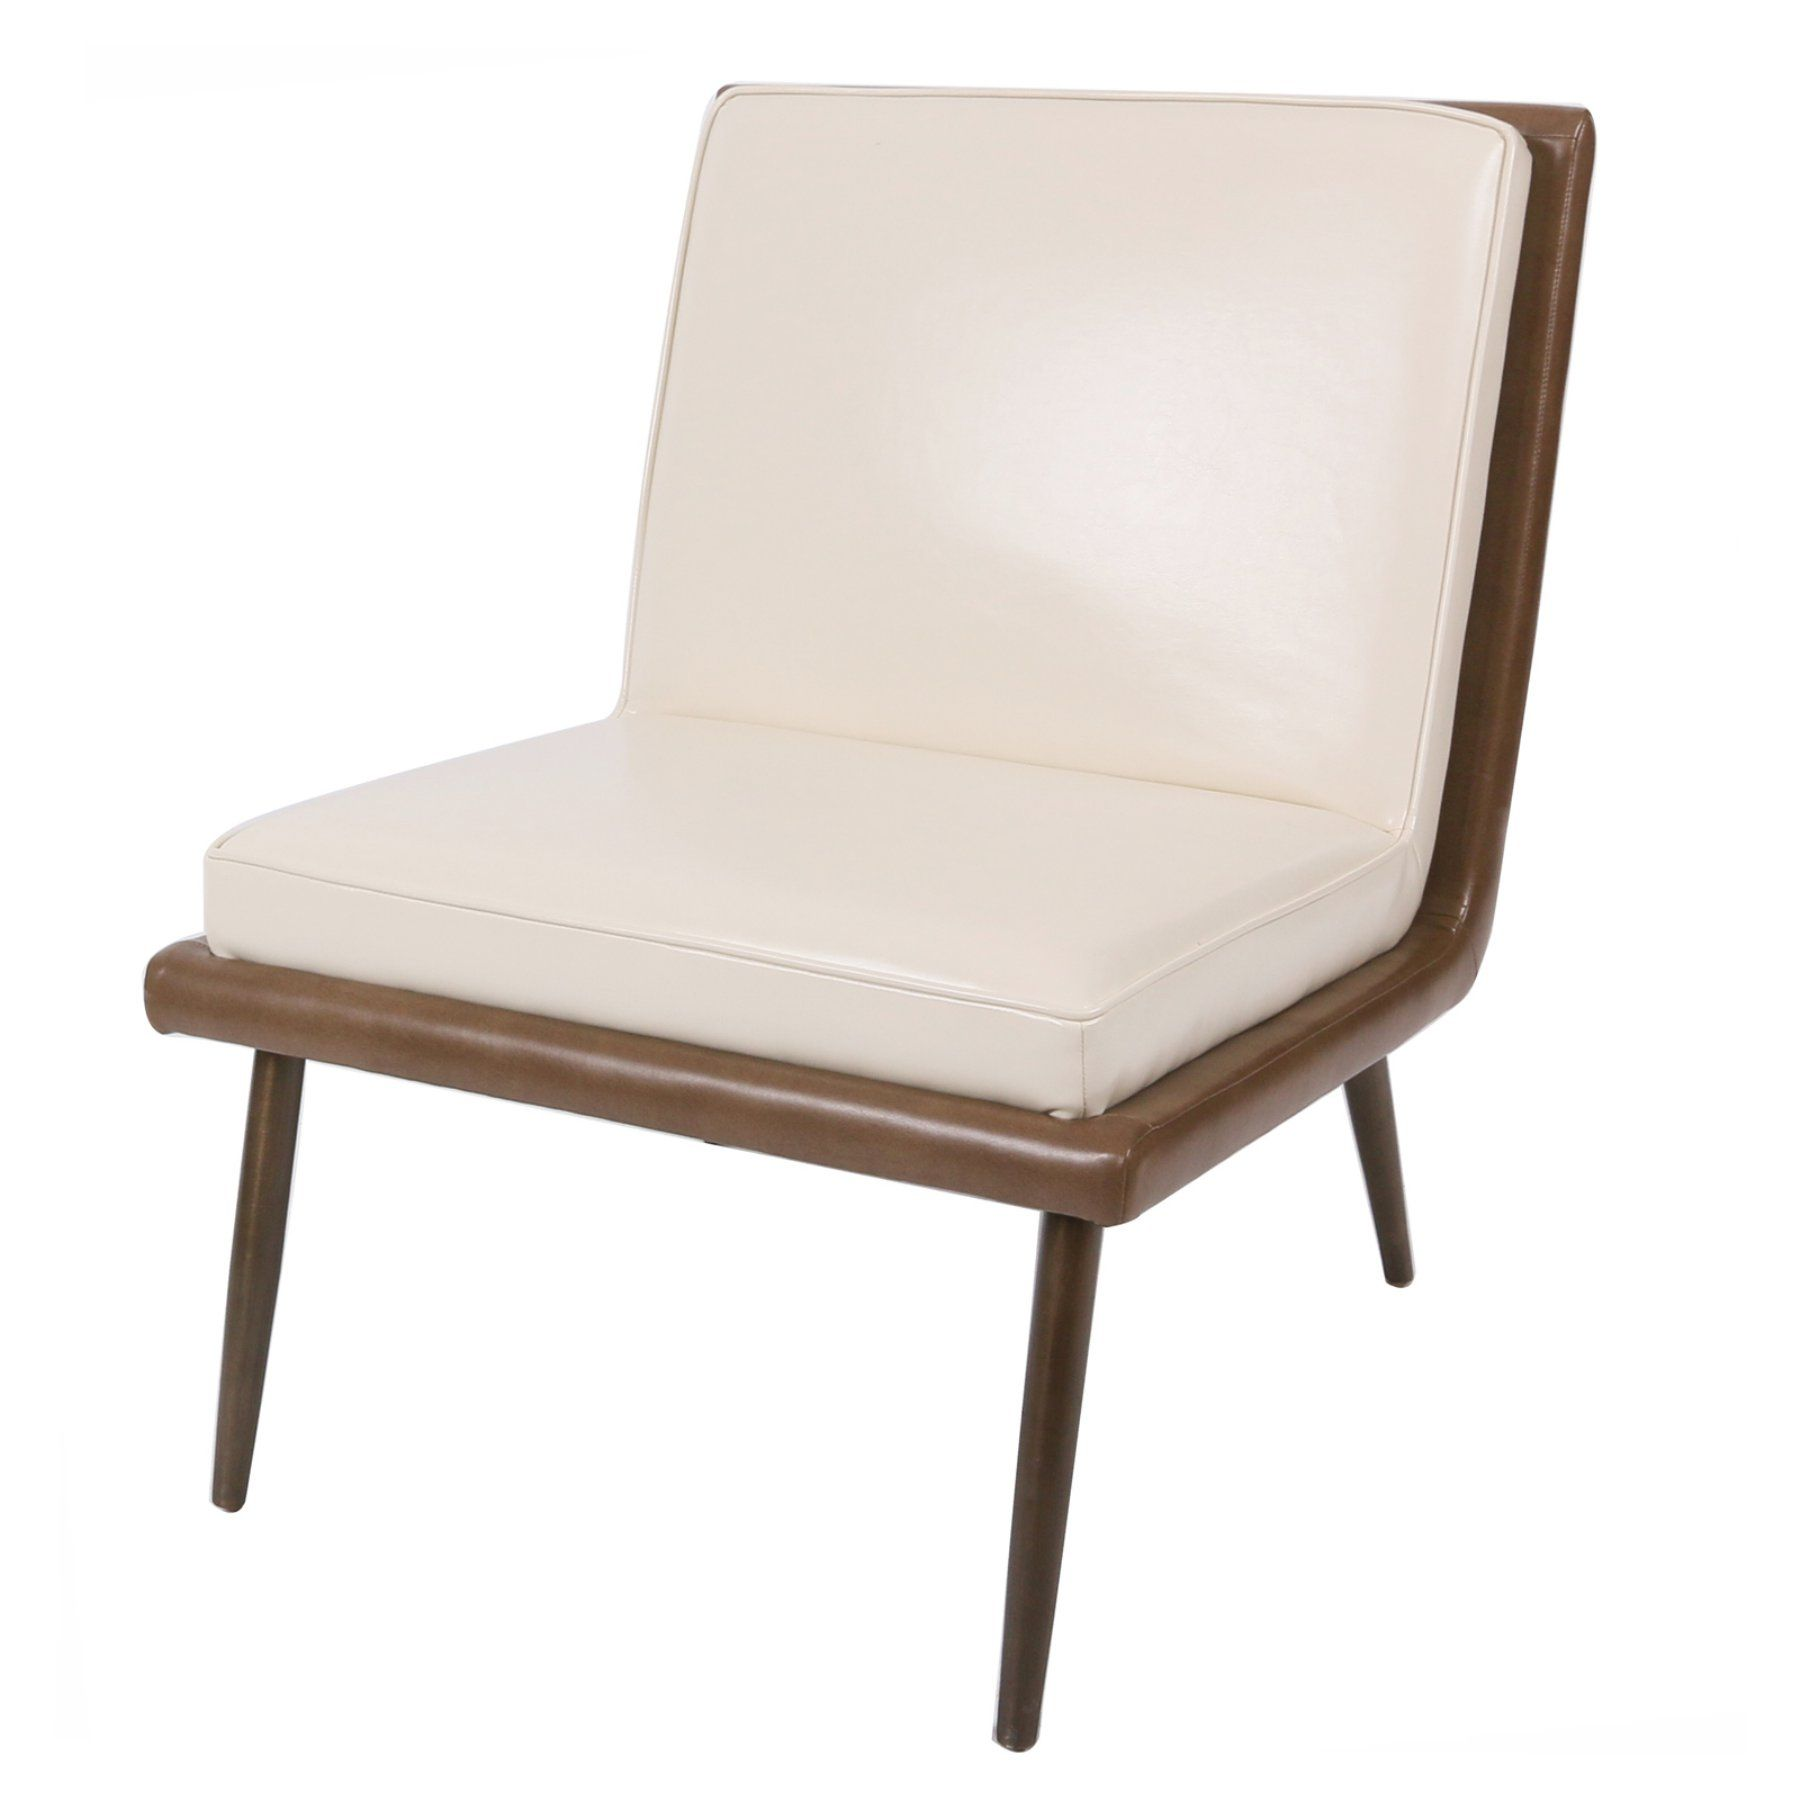 Brilliant New Pacific Direct Inc Auden Leather Accent Chair 3500039 Caraccident5 Cool Chair Designs And Ideas Caraccident5Info